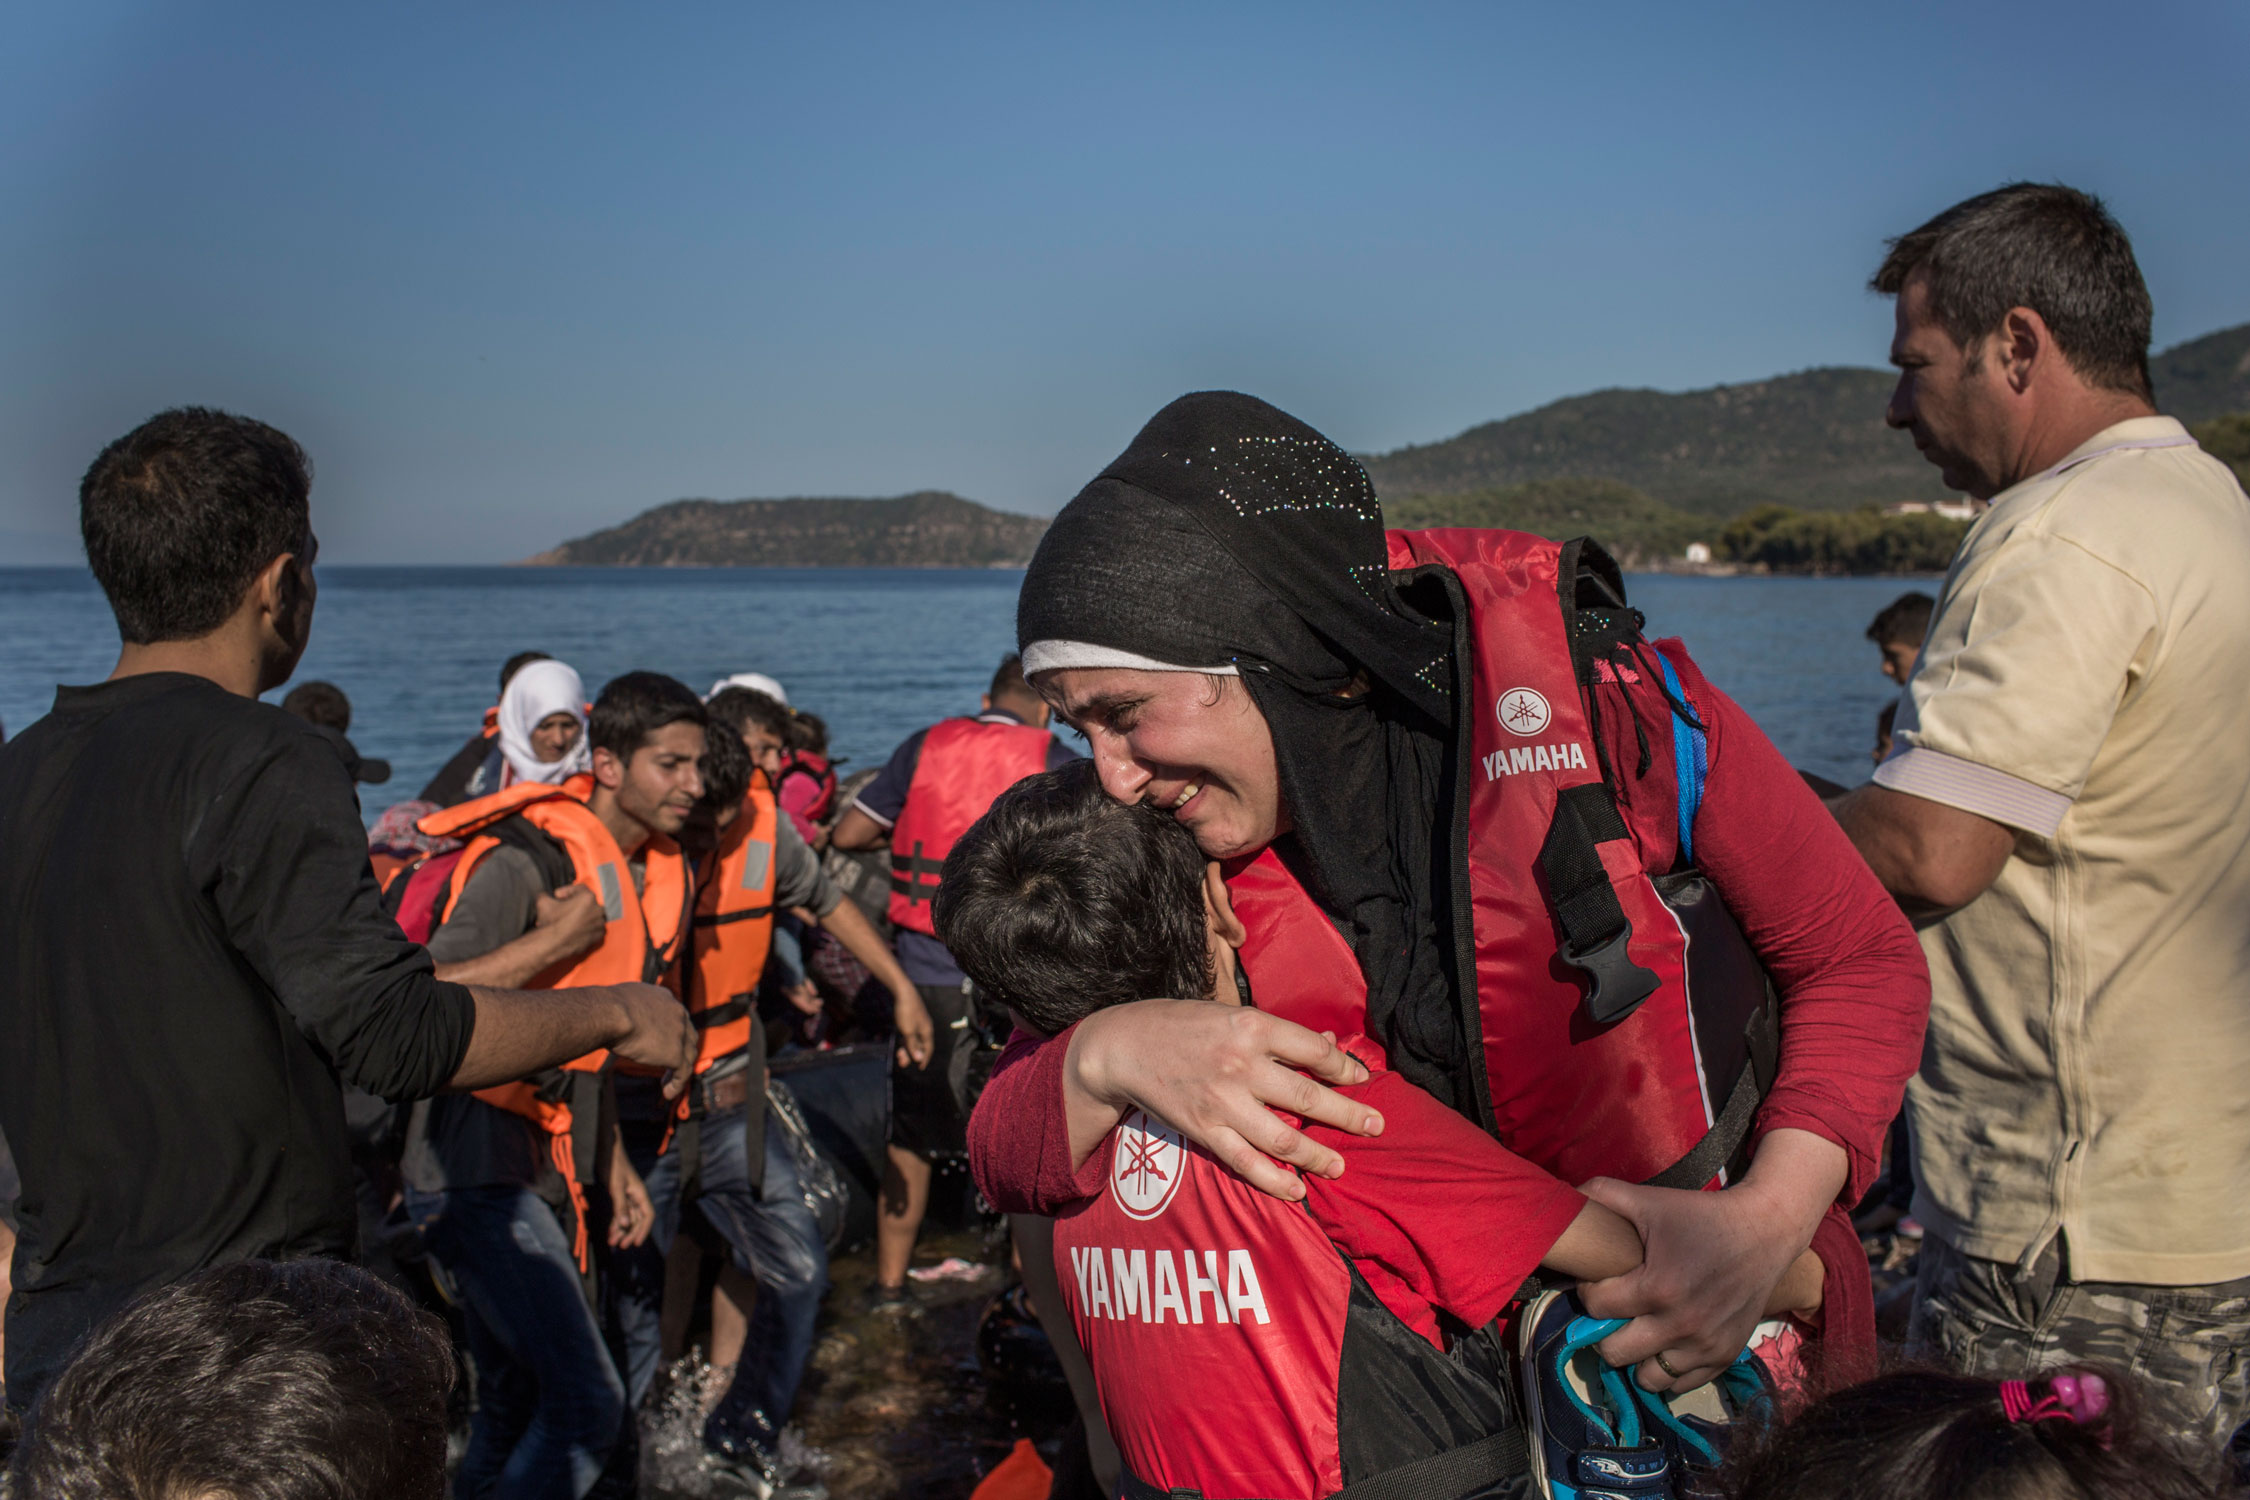 Photographer: Ivor Prickett | Syrian refugee Layla from Aleppo cries tears of joy as she hugs her 8-year-old son Lawand after they and their family reached Greek shores having crossed the Aegean from Turkey.